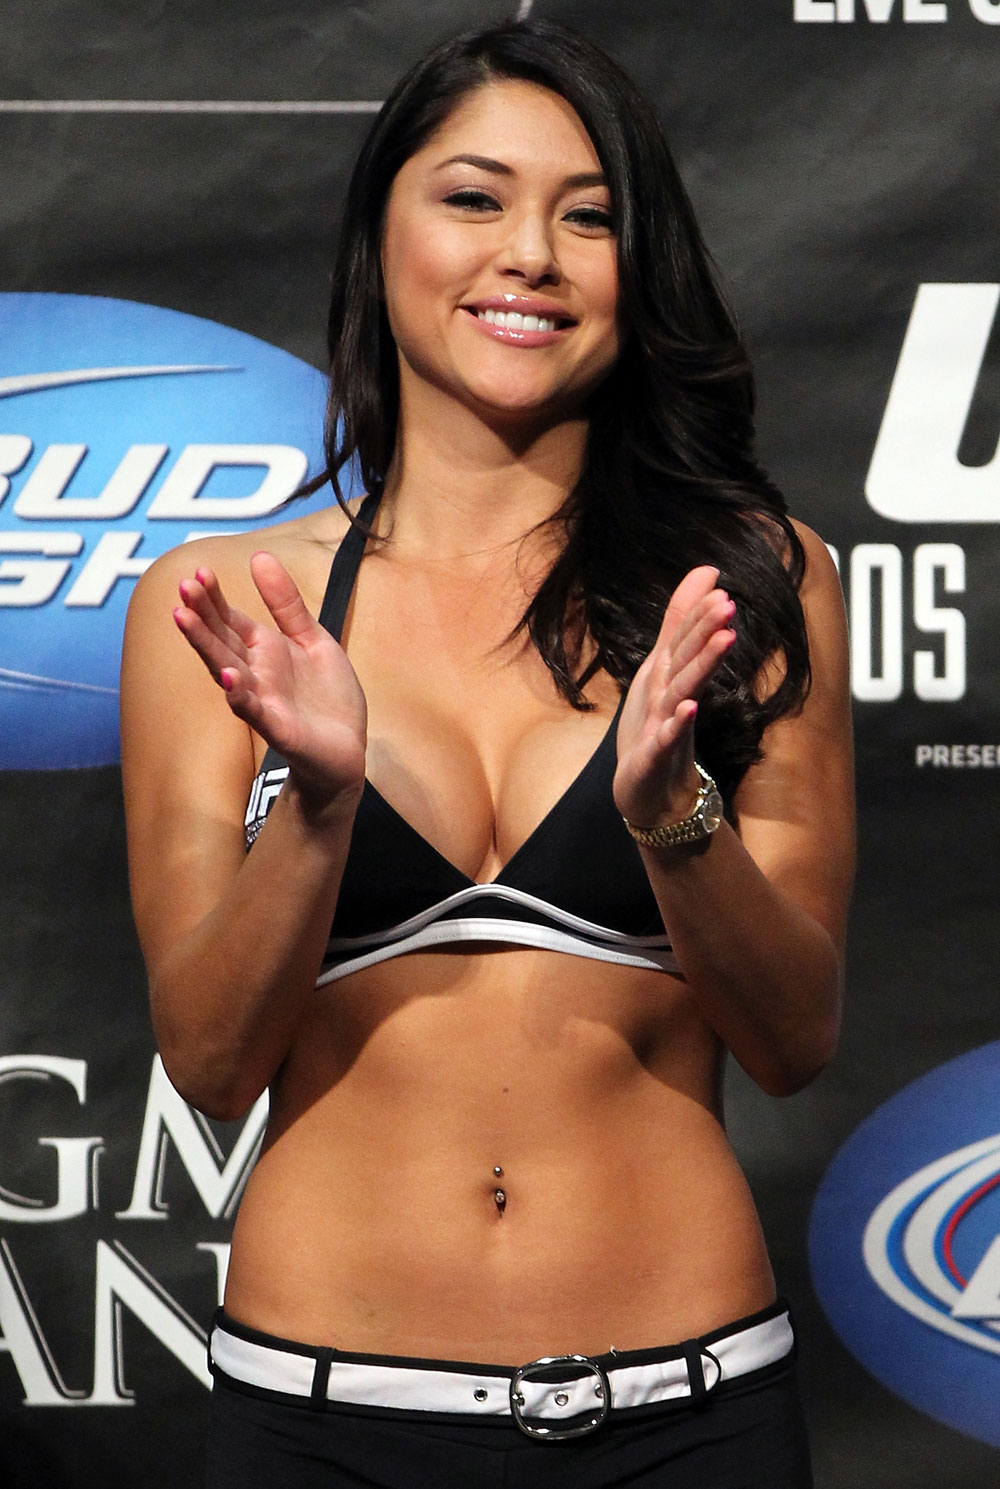 LAS VEGAS, NV - MAY 25:   UFC Octagon Girl Arianny Celeste attends the UFC 146 official weigh in at the MGM Grand Garden Arena on May 25, 2012 in Las Vegas, Nevada.  (Photo by Josh Hedges/Zuffa LLC/Zuffa LLC via Getty Images)